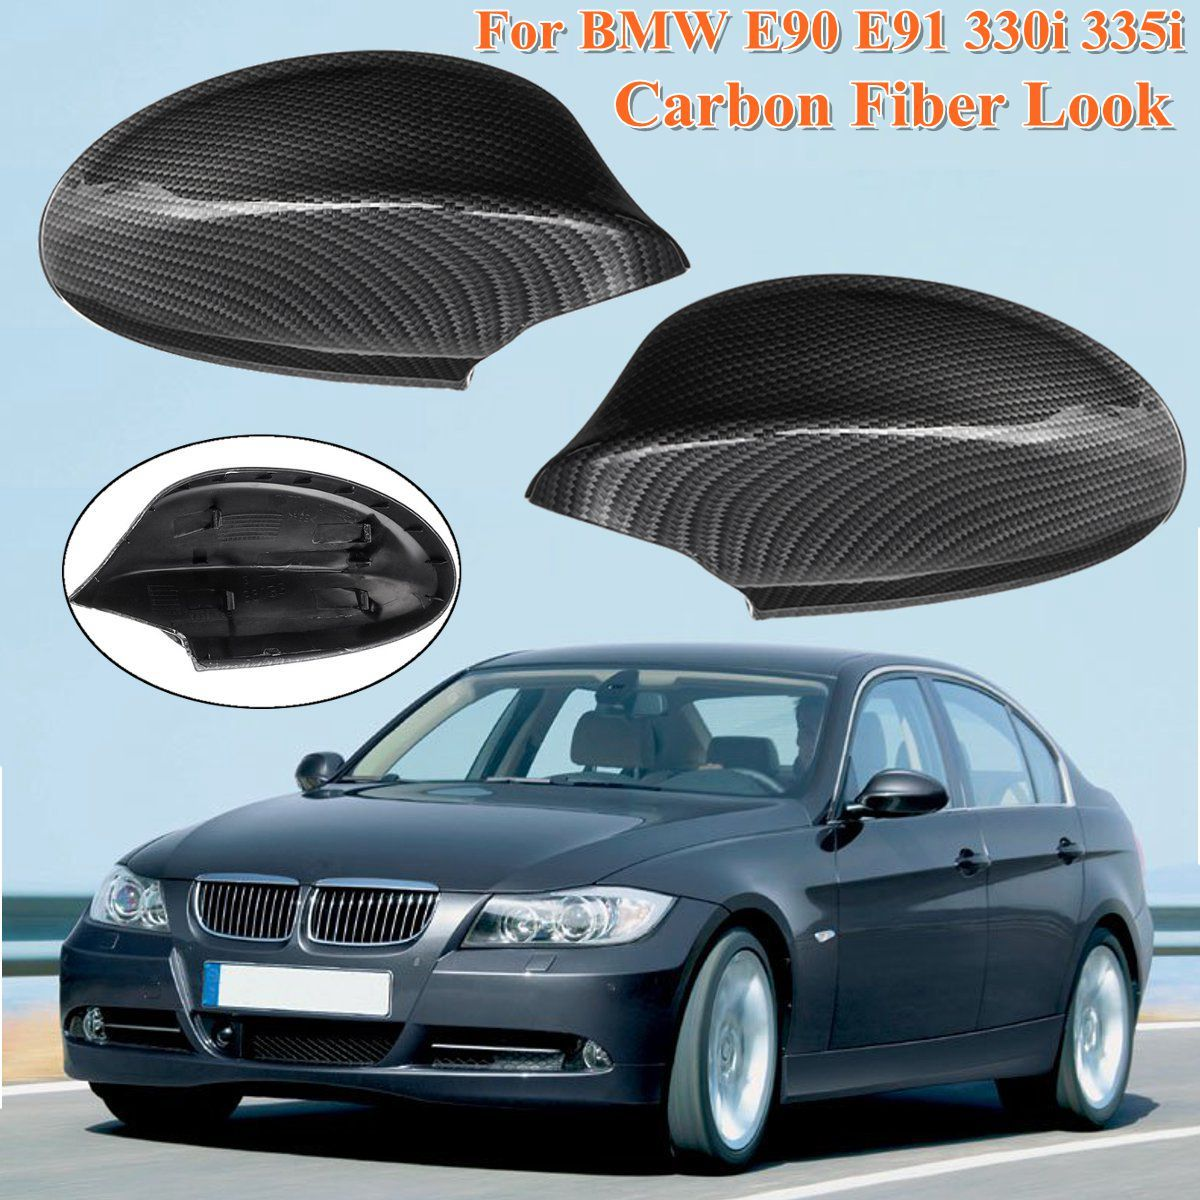 For BMW E90 E91 330i 335i 2005 2006 2007 51167135097 Car ABS Black Carbon Fiber Pattern Rear View Rearview Side Mirror Cover Cap